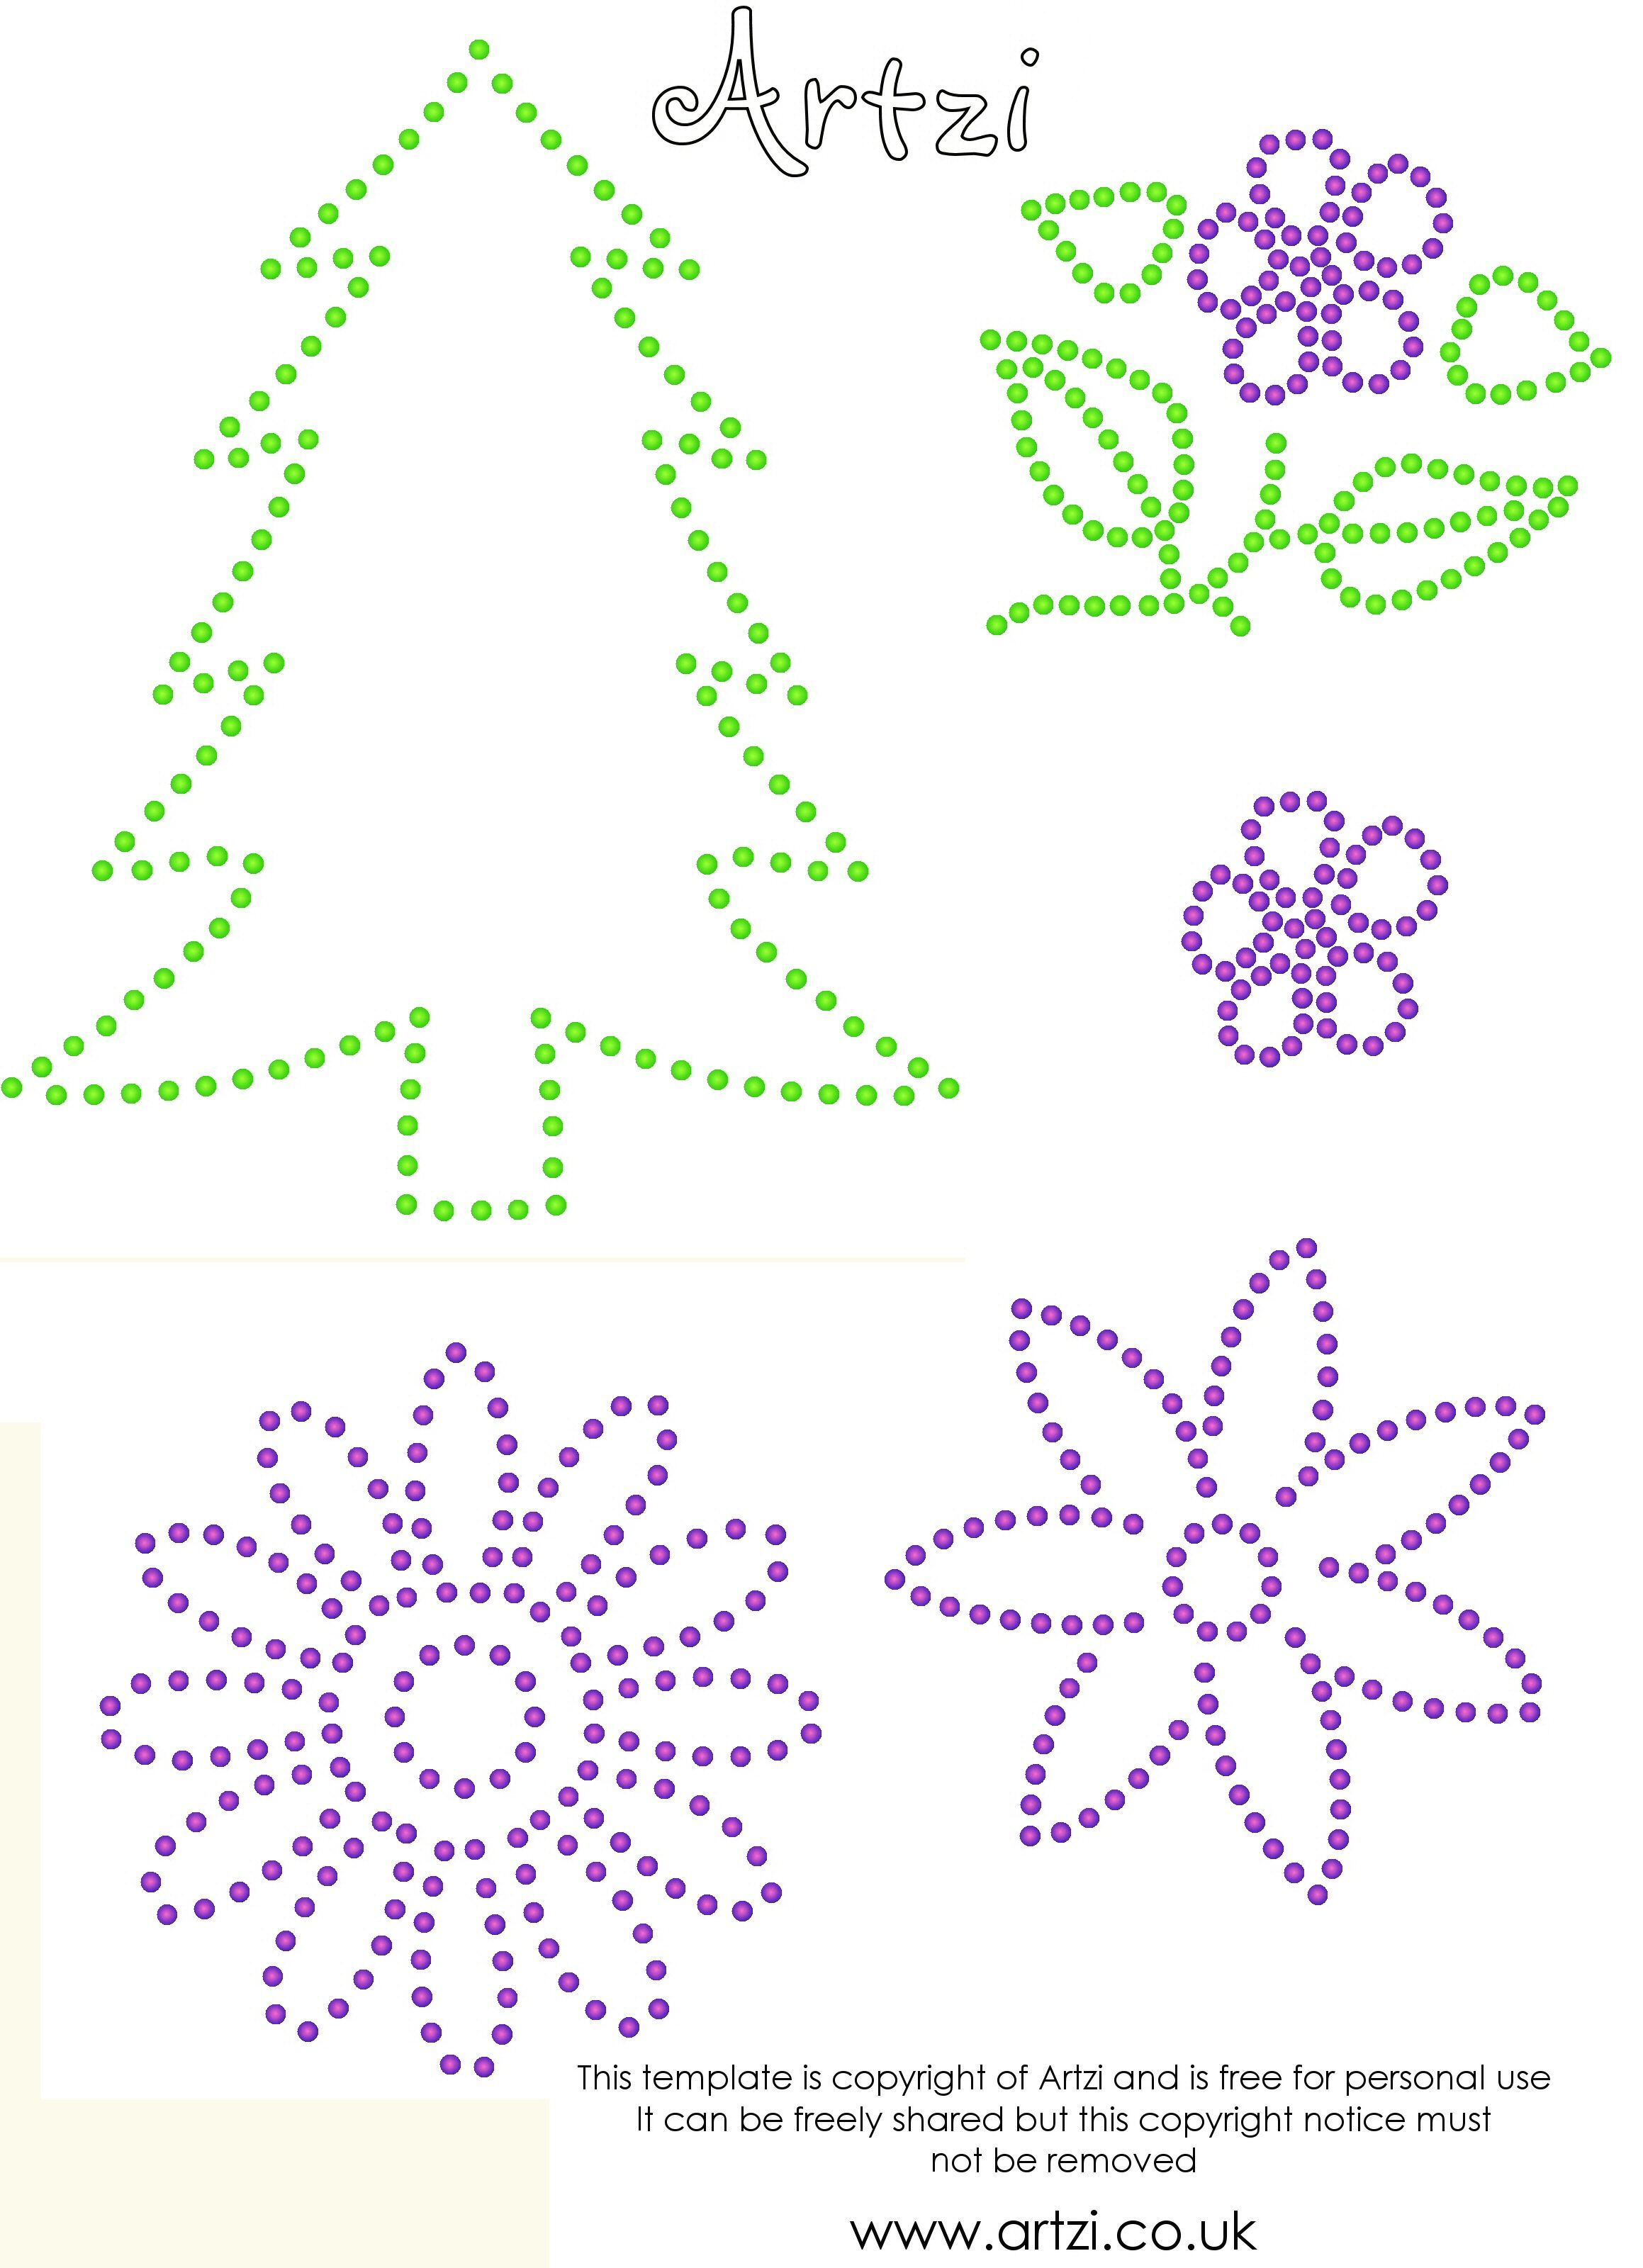 Free Rhinestone Template Downloads Download The Gsd File Here